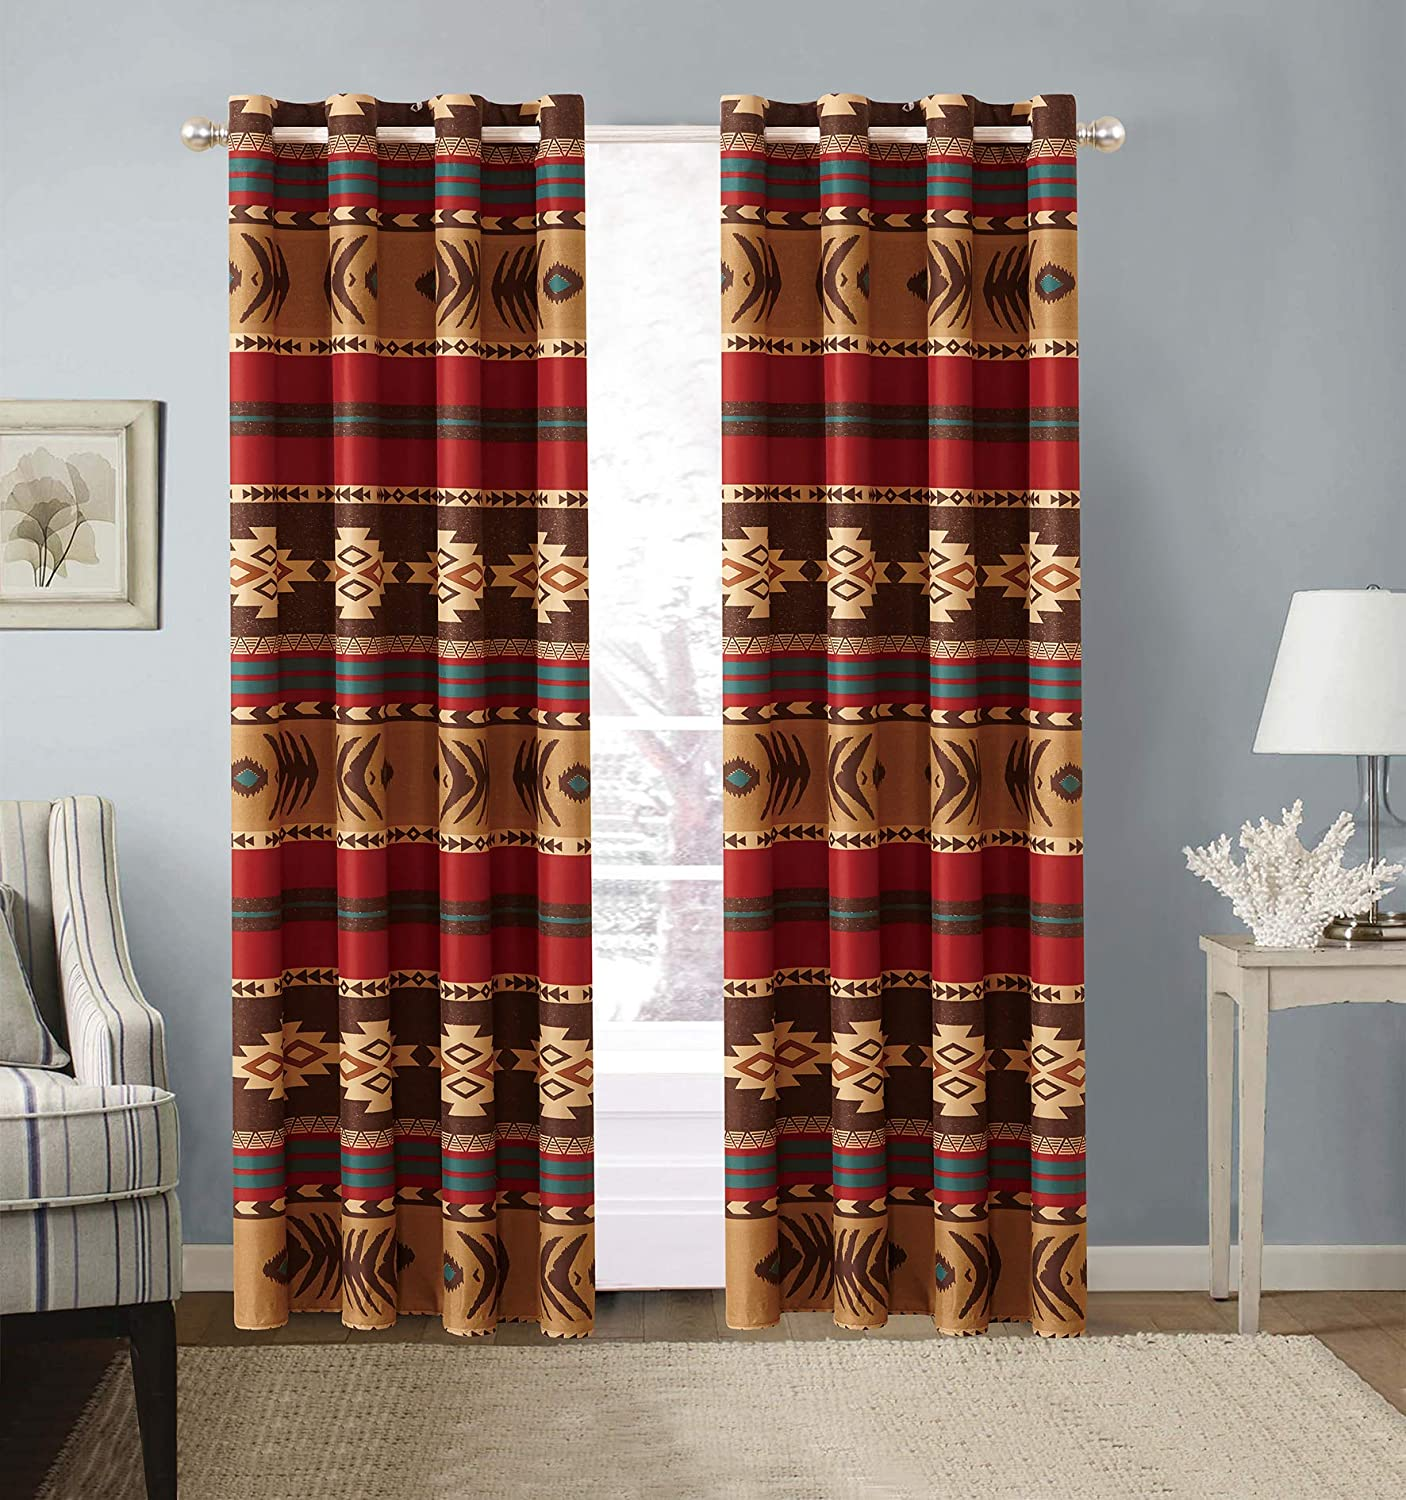 Rustic Western Native American 2 Piece Window Curtain Treatment Two Piece Drapes with Grommets in Brown Beige & Burgundy (2 Panels - 54x84 Each) Mojave Curtain 2PC